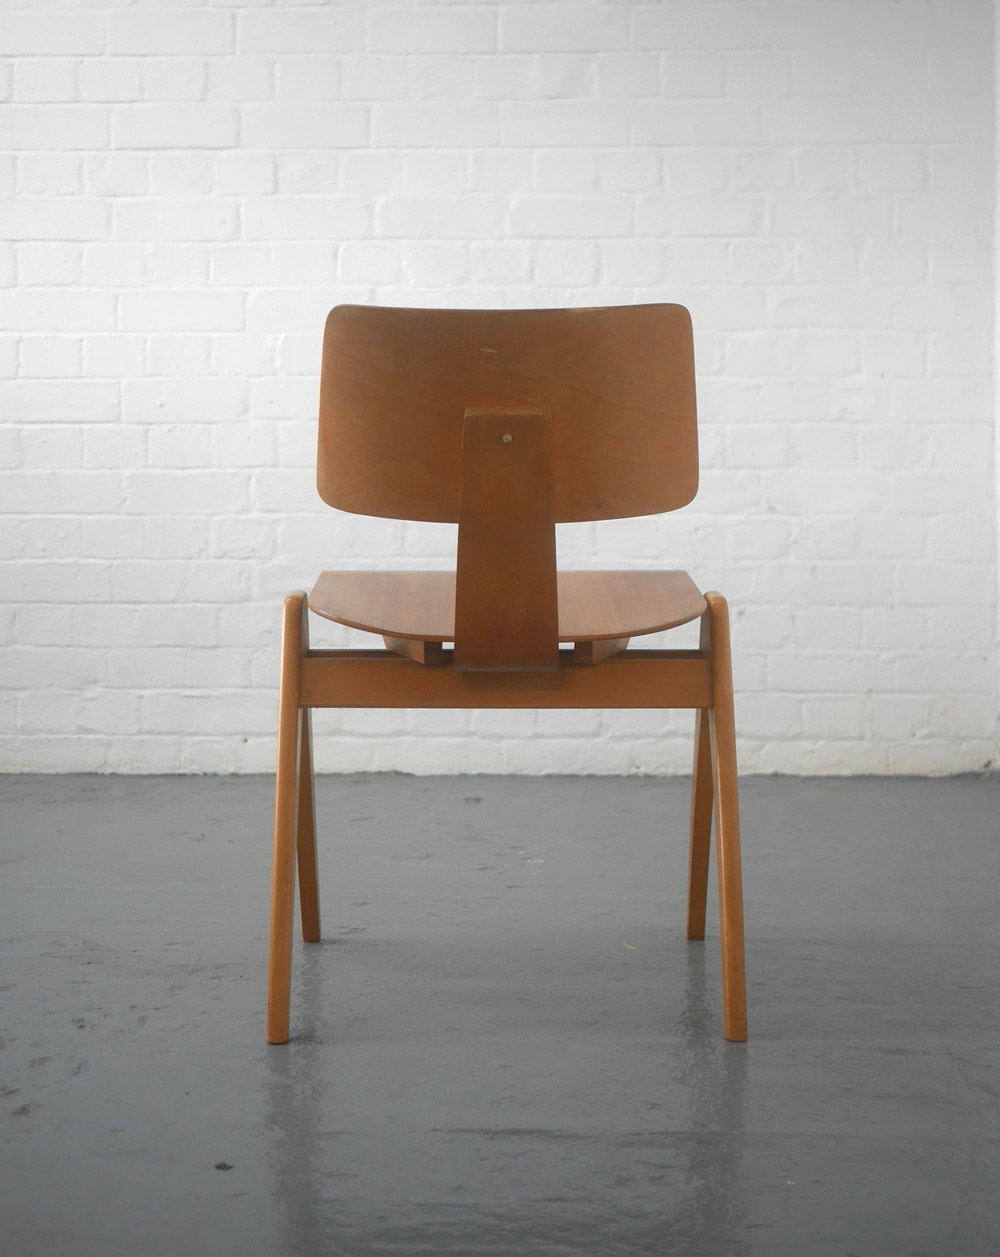 Hillestak chair by Robin Day for Hille